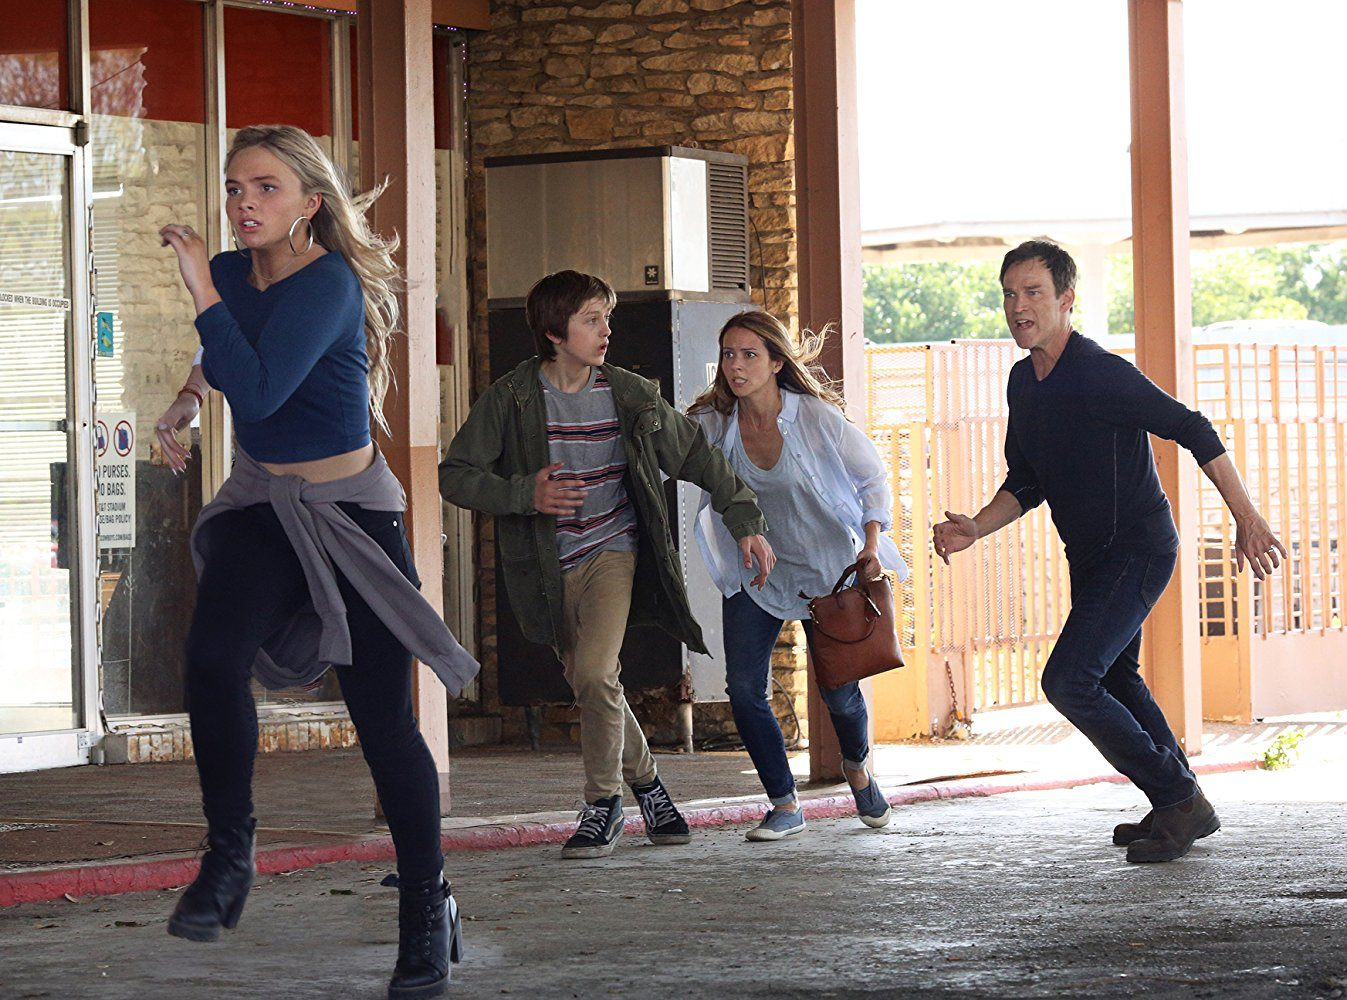 Lauren, Andy, Caitlin, and Reed Strucker running in front of a building